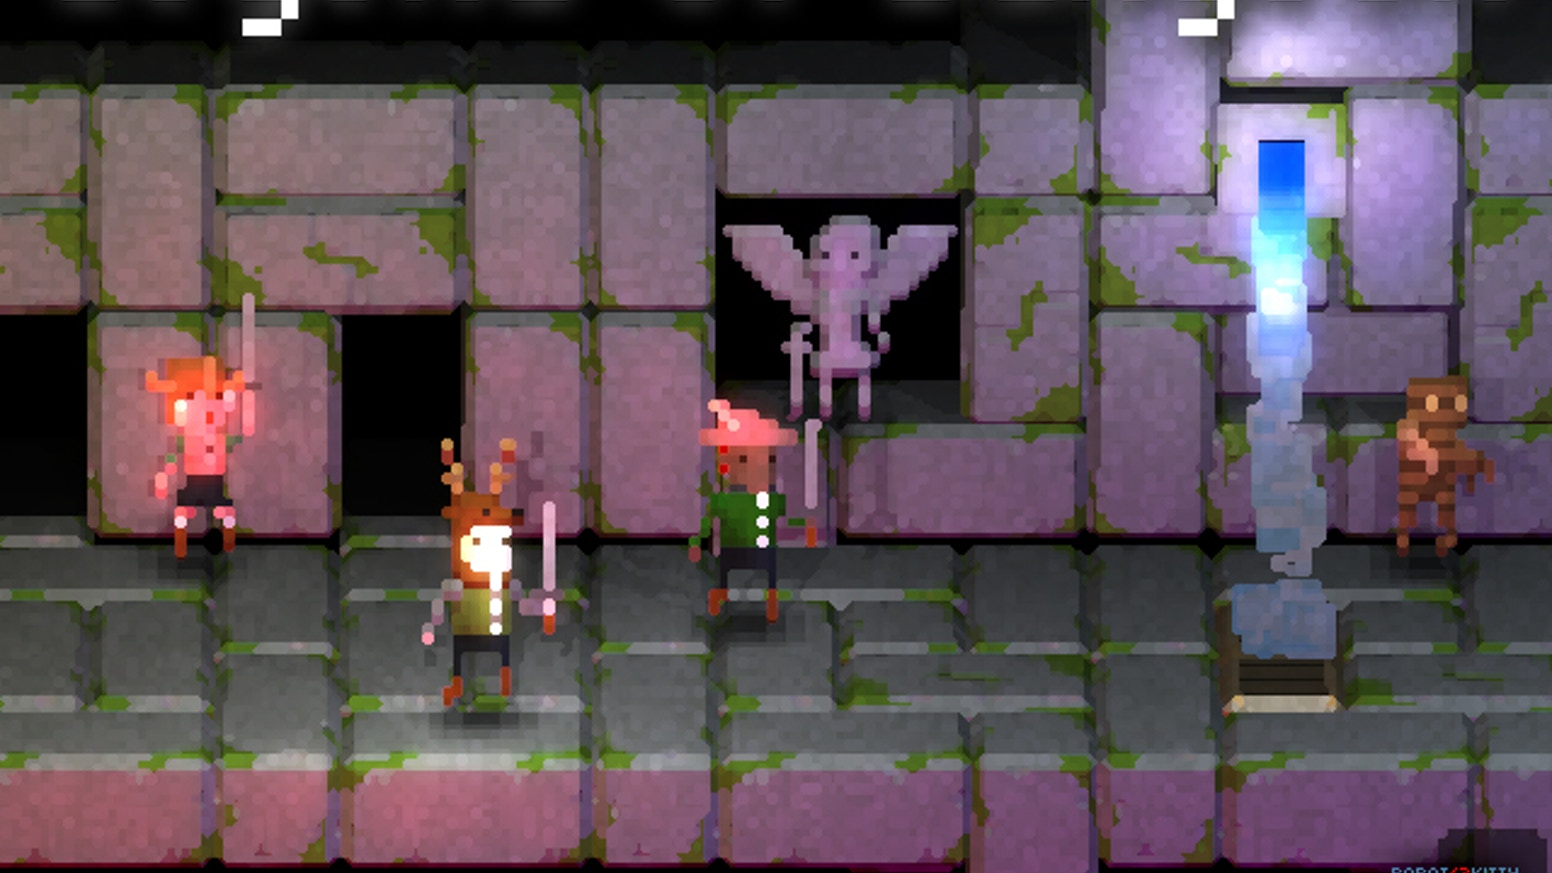 Legend of Dungeon is a 4 Player Co-Op Roguelike-like Beat'em'up with dynamic lighting on awesome pixel art.